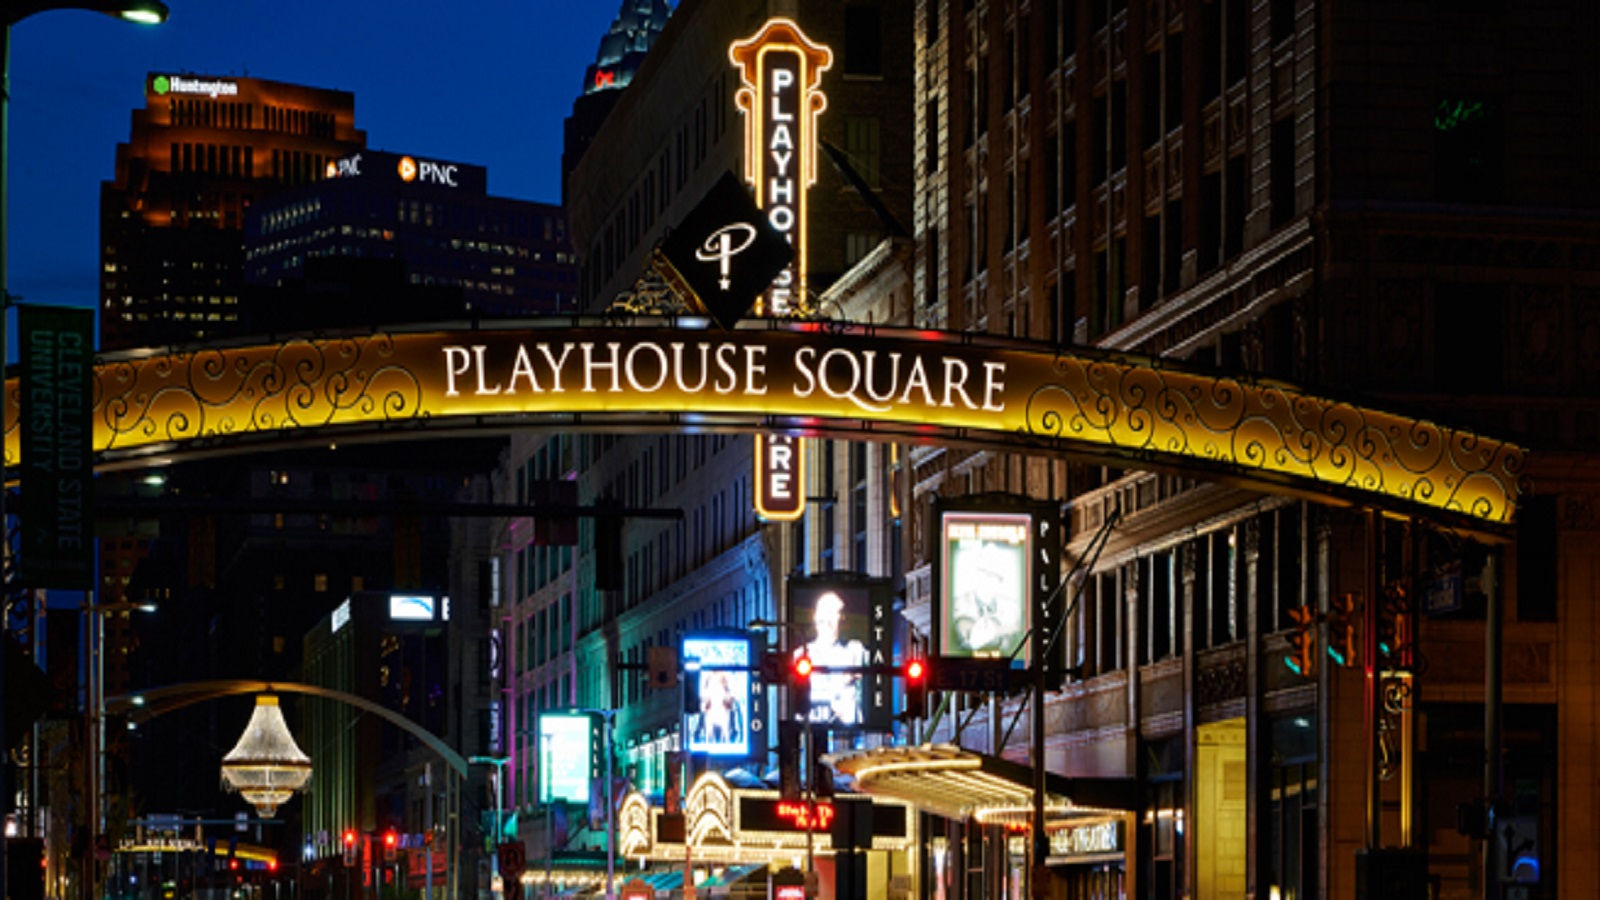 Things to do in Cleveland - Playhouse Square